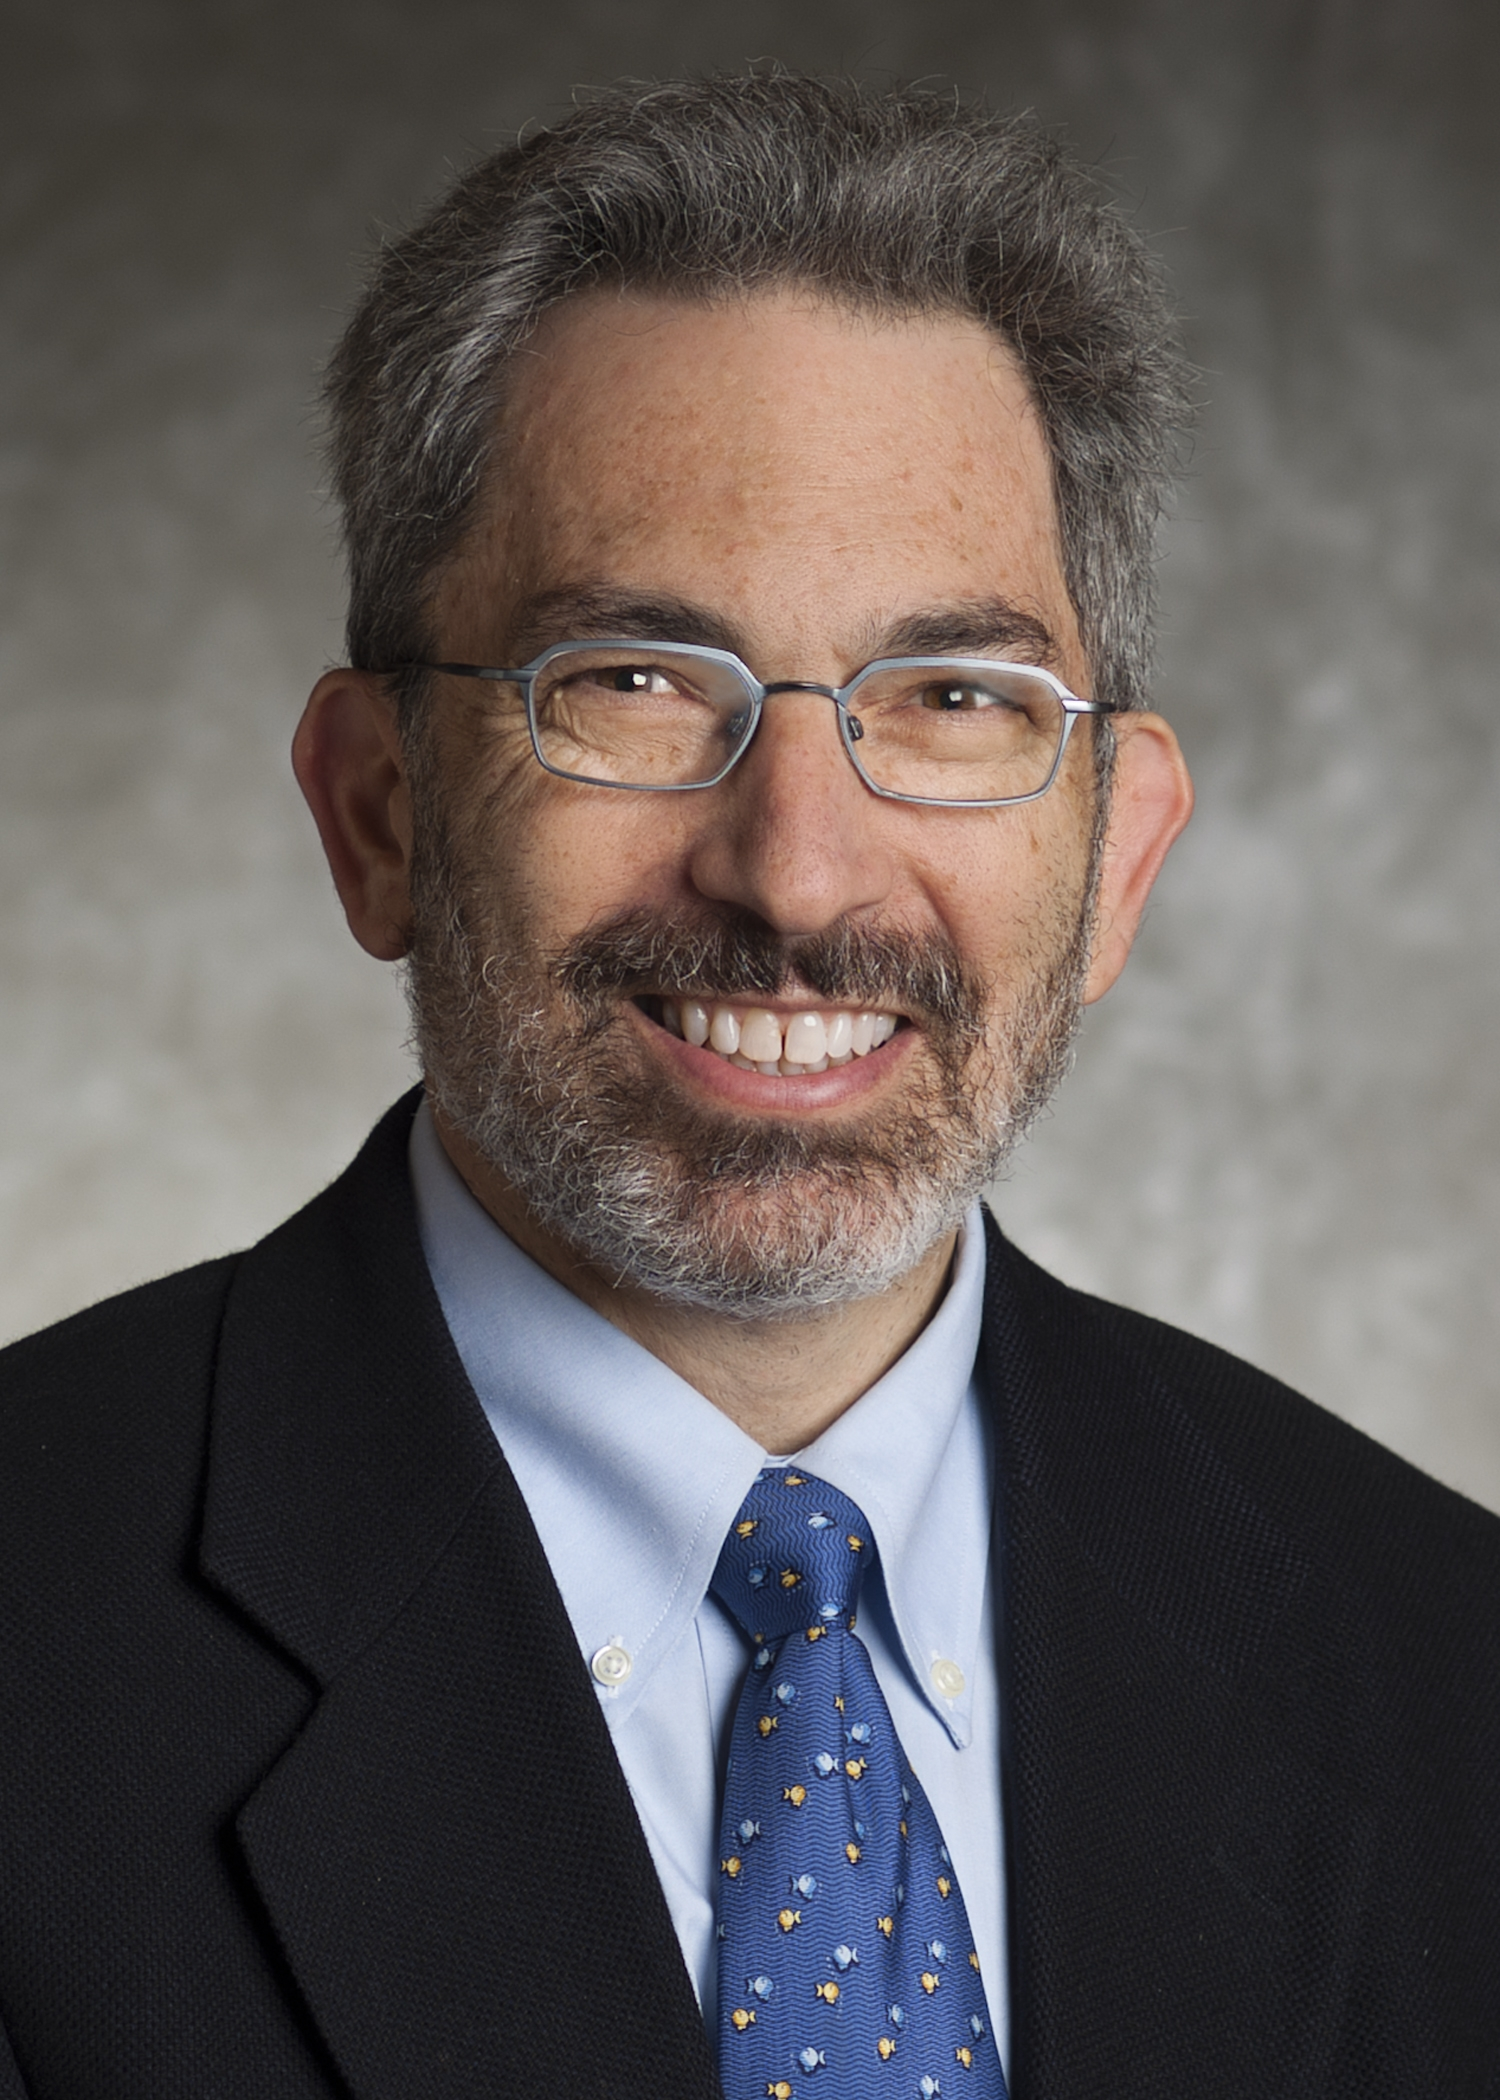 William R. Stern, MD, FACG